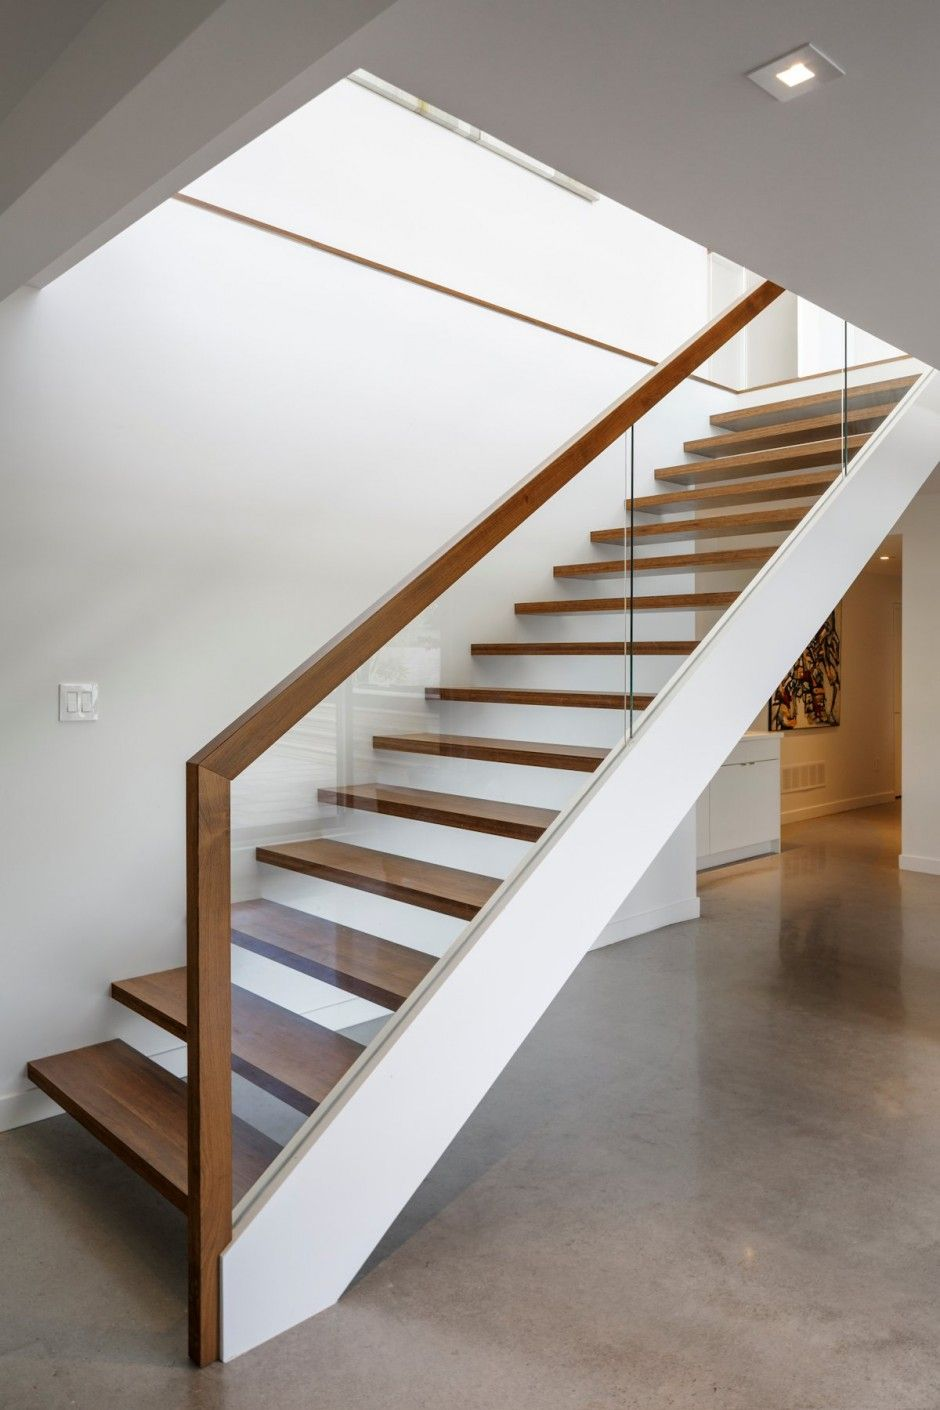 stair design details - glass with wood railing - interior design details -  Dunrobin Shores / Christopher Simmonds Architect